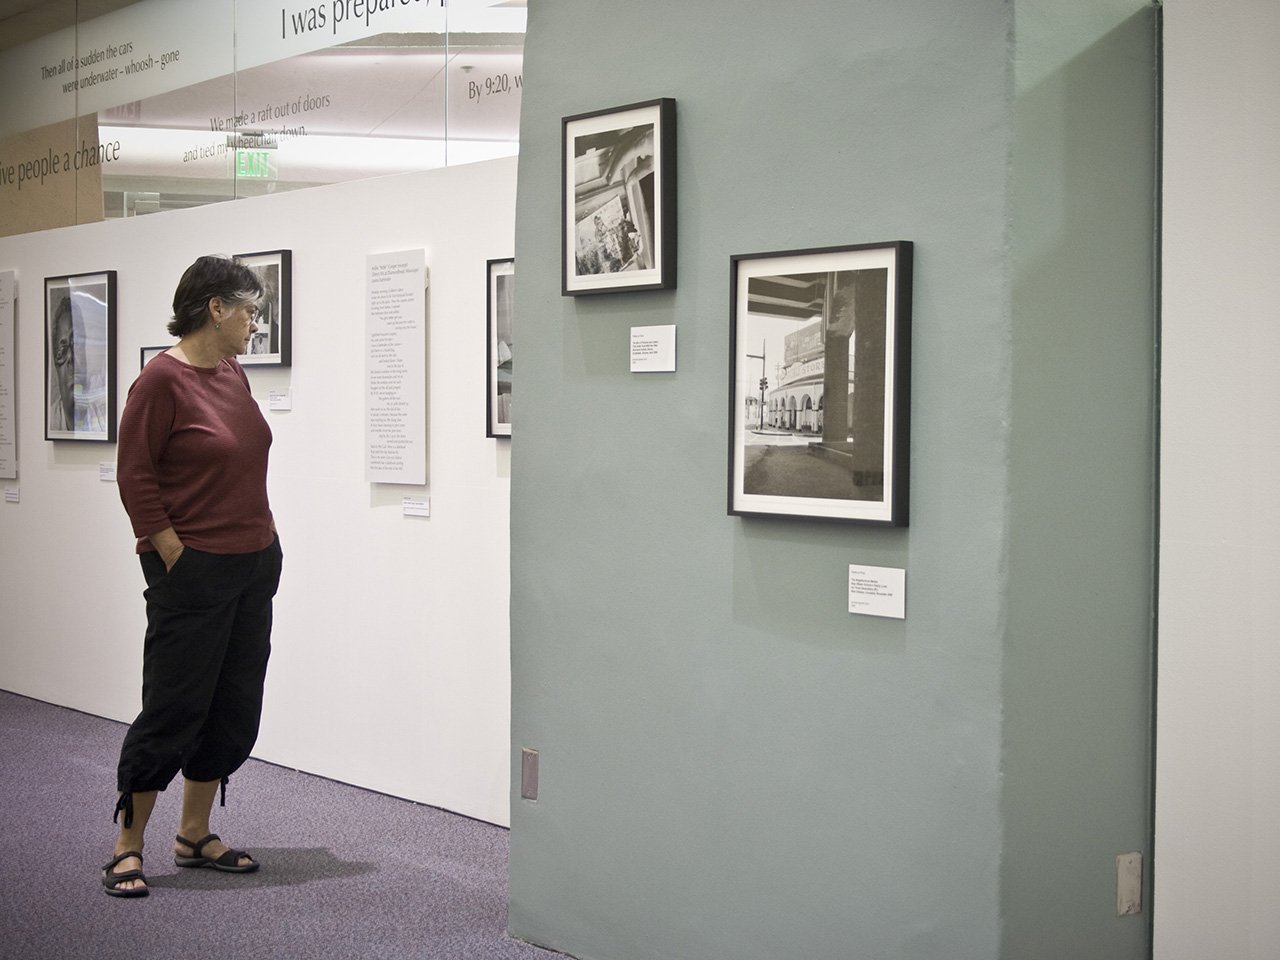 hurricane katrina exhibition with woman looking at images